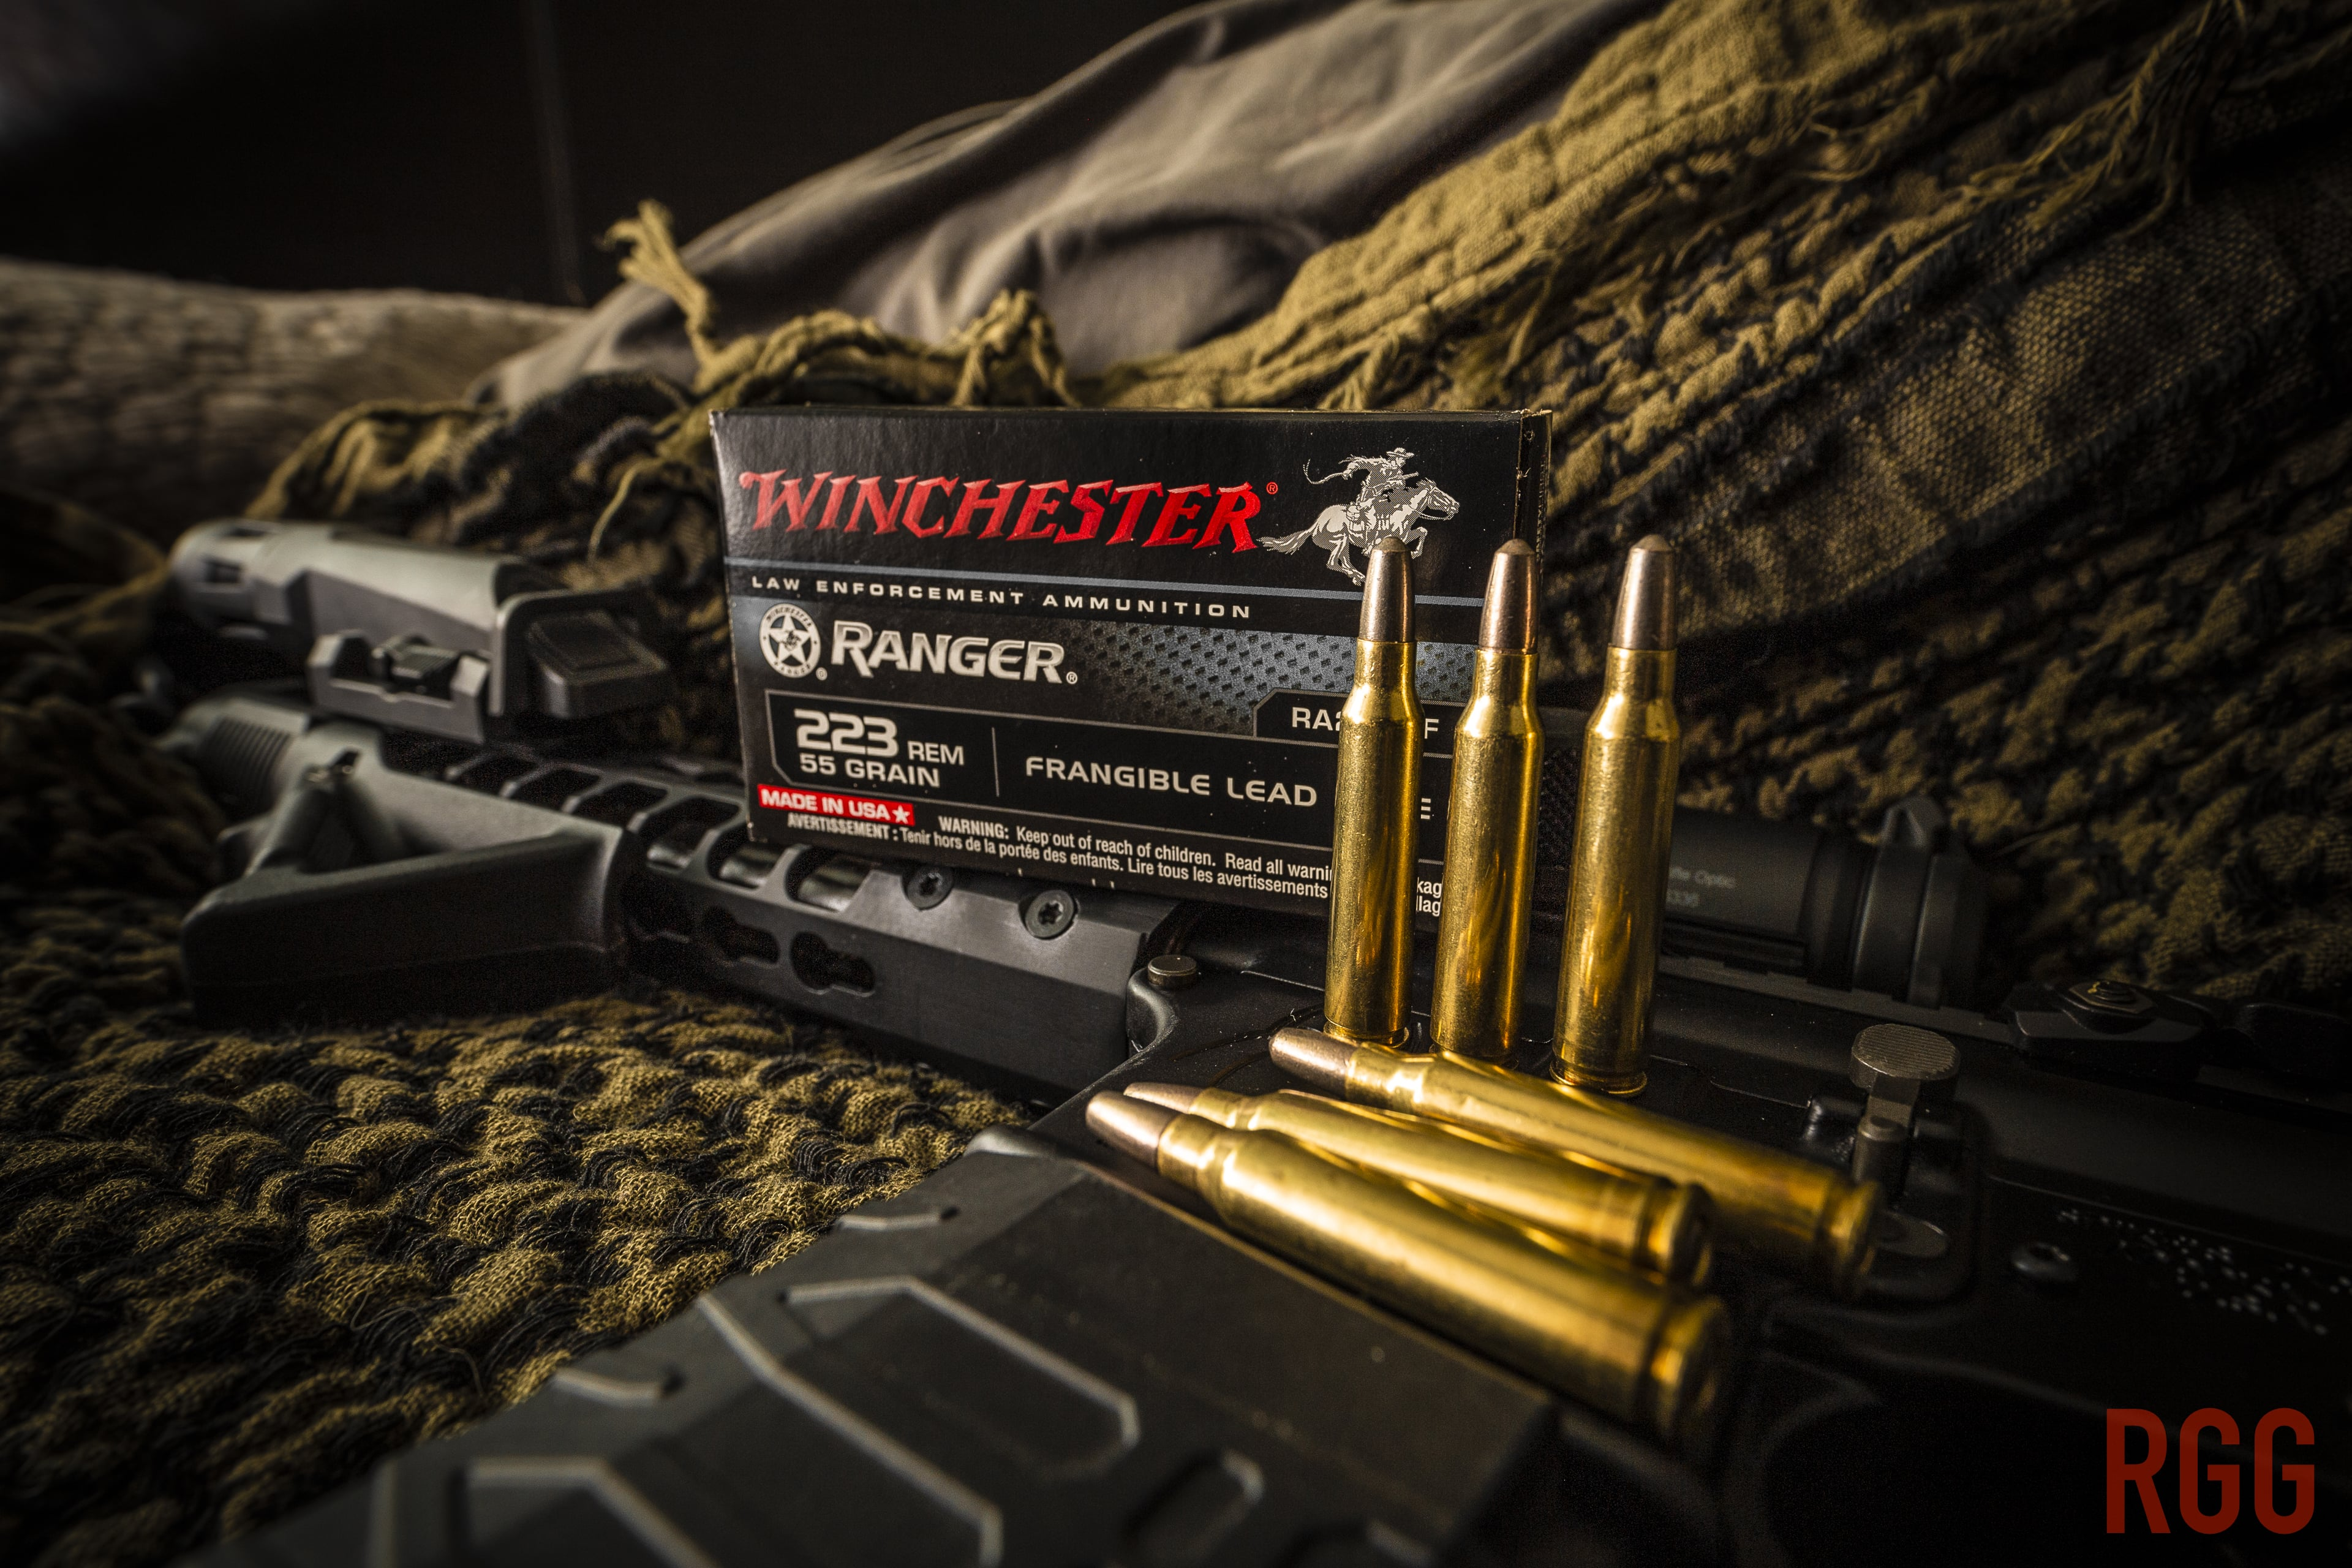 Anyone ever run this 223 ammo from Winchester?